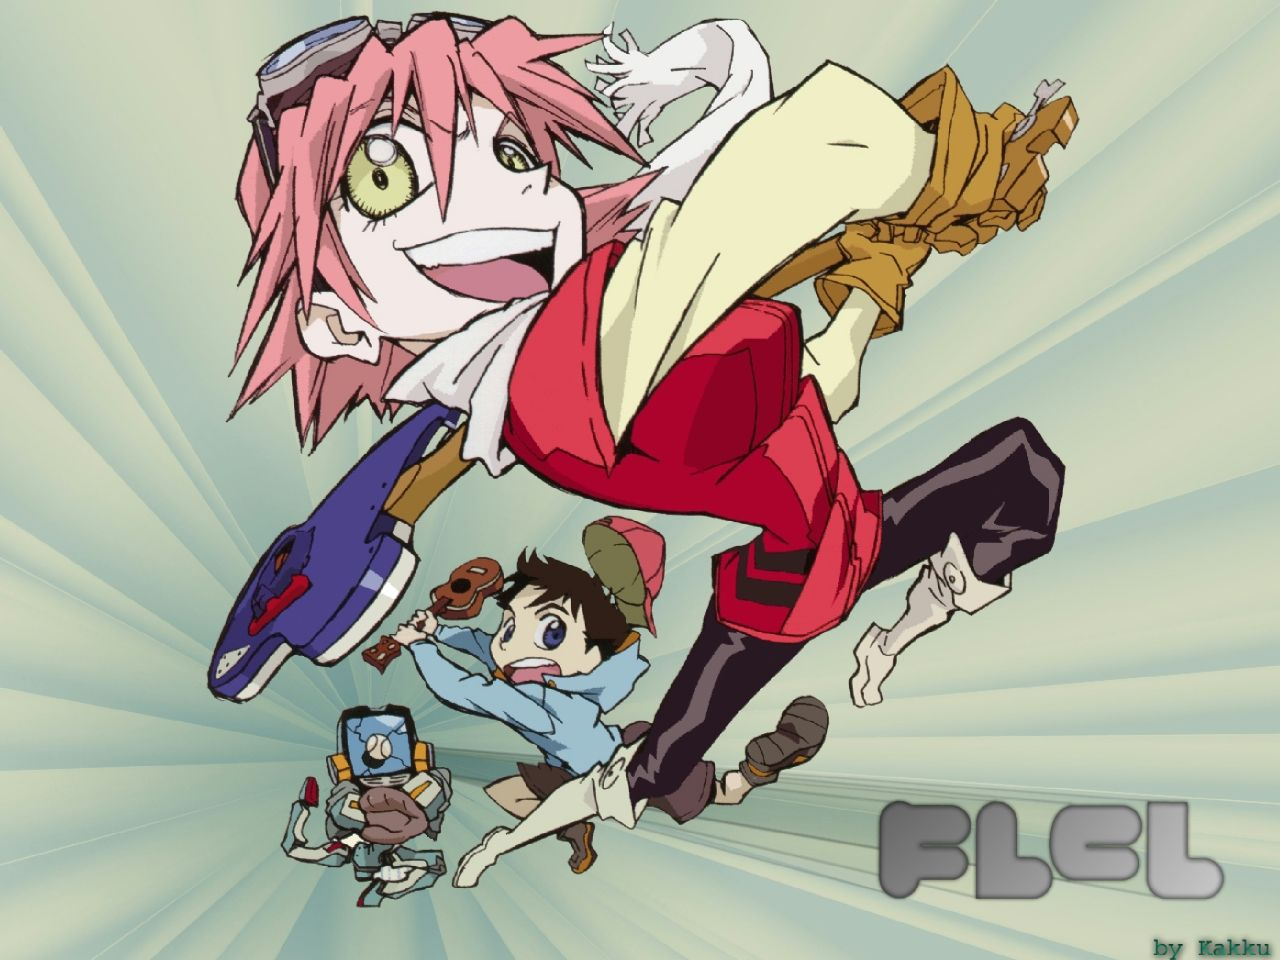 Download FLCL OST No. 3 cover Wallie (1280x960